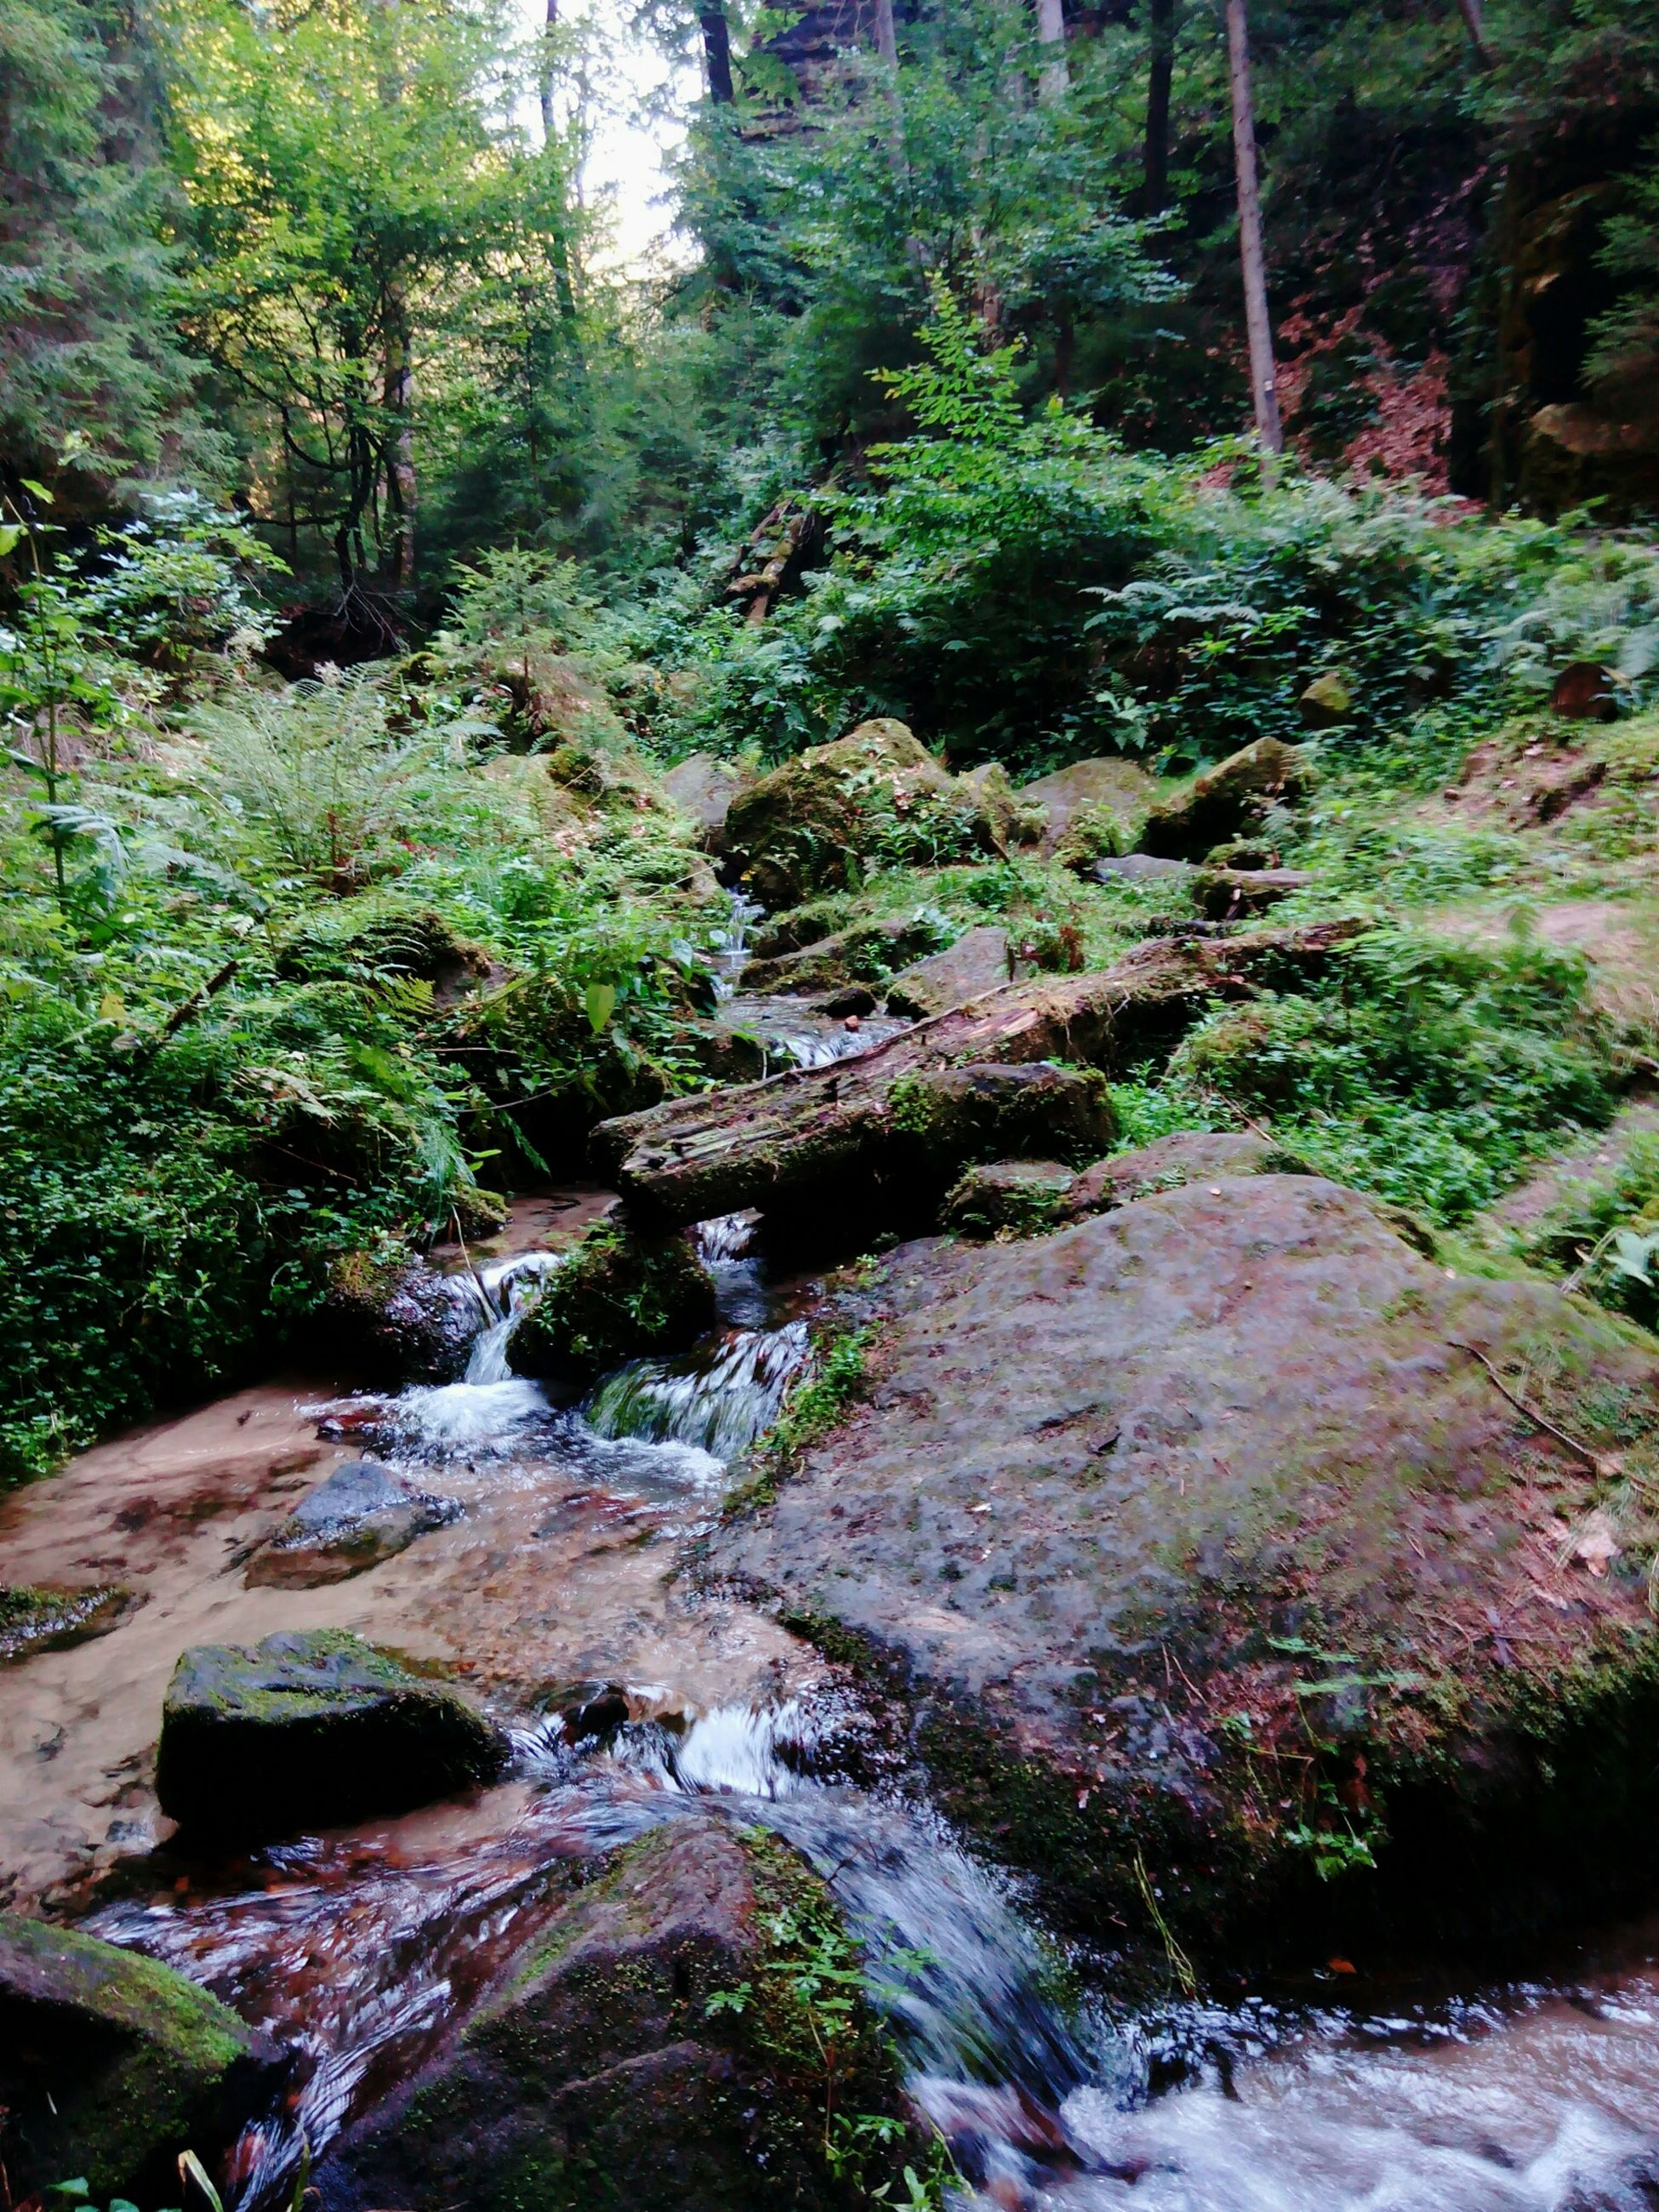 tree, forest, growth, tranquility, nature, rock - object, stream, beauty in nature, moss, tranquil scene, green color, scenics, plant, non-urban scene, flowing water, day, tree trunk, woodland, outdoors, no people